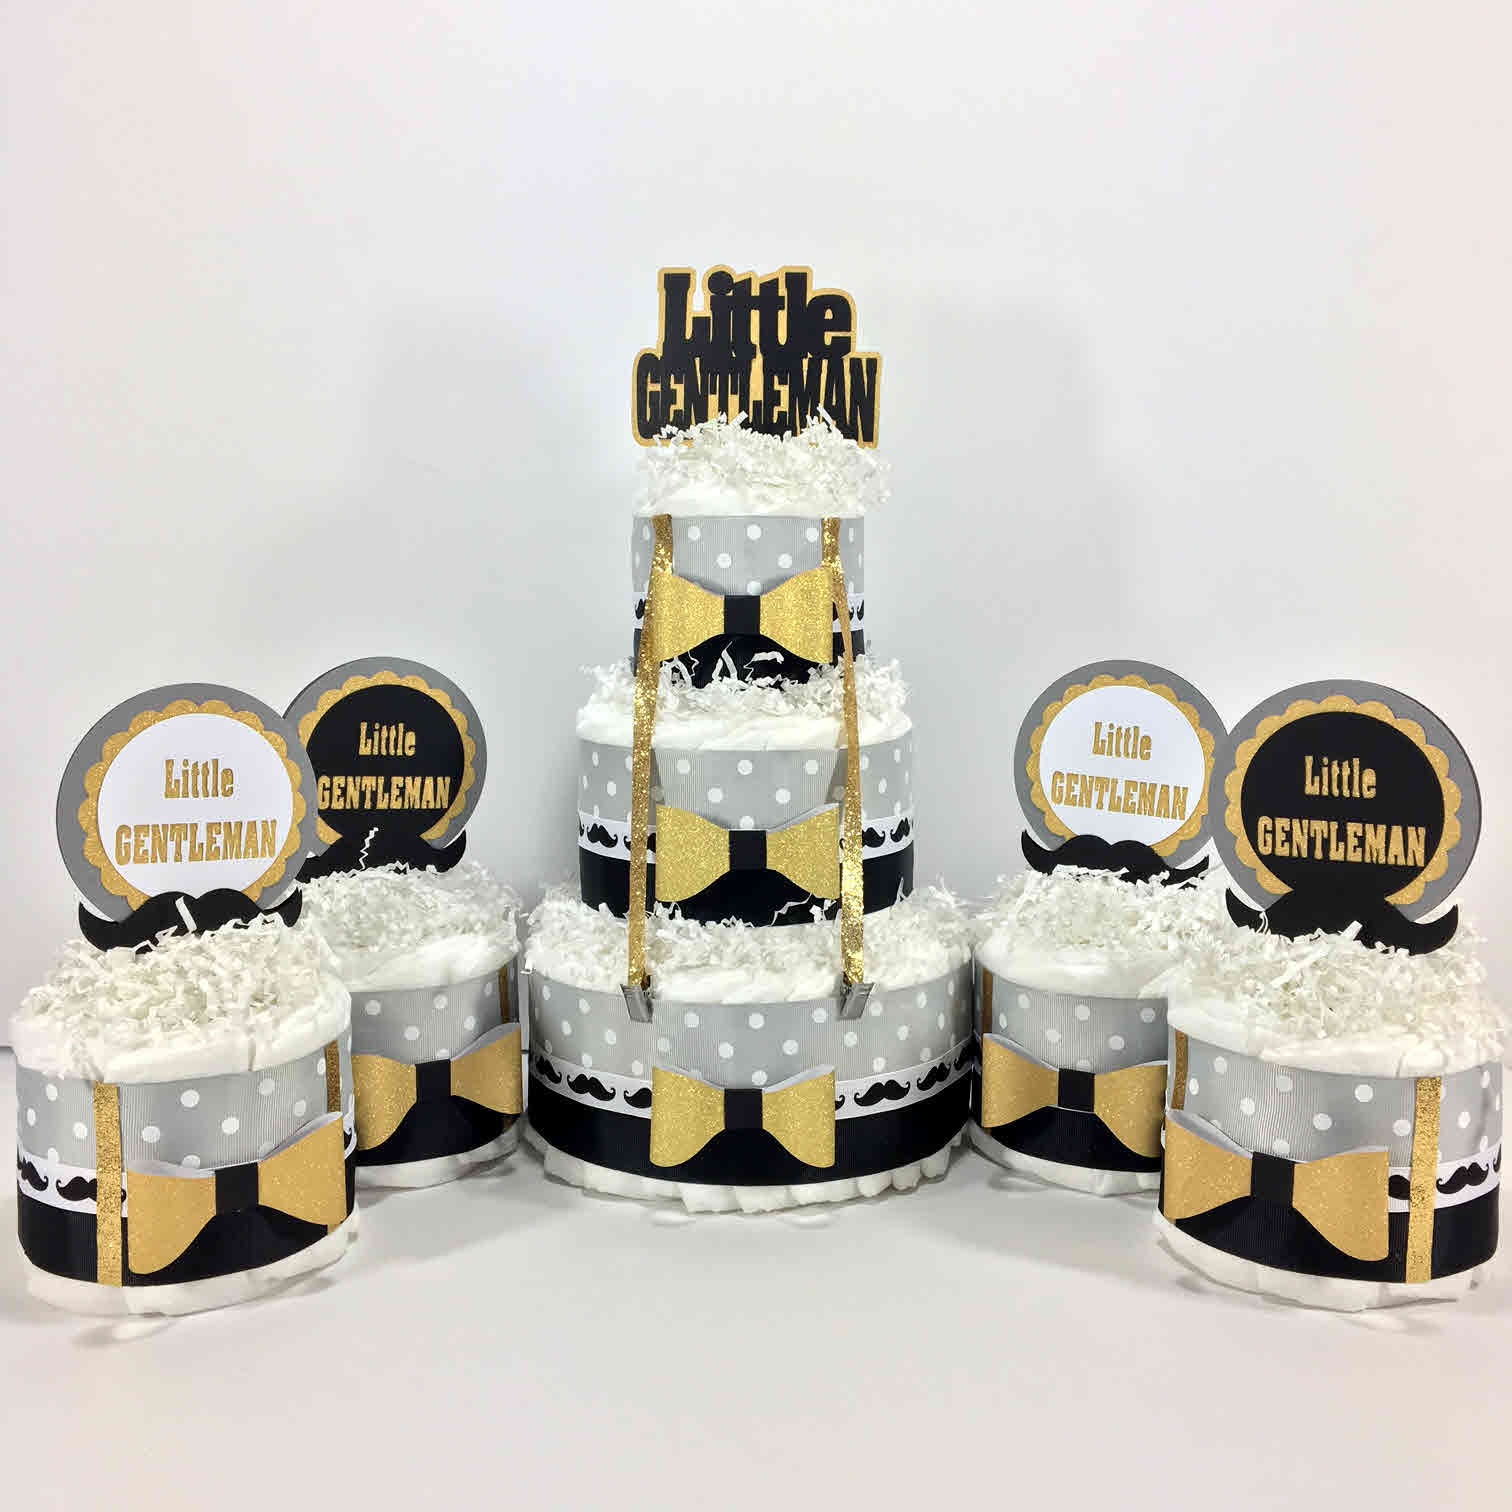 Little Gentleman Diaper Cakes - Black, Gold